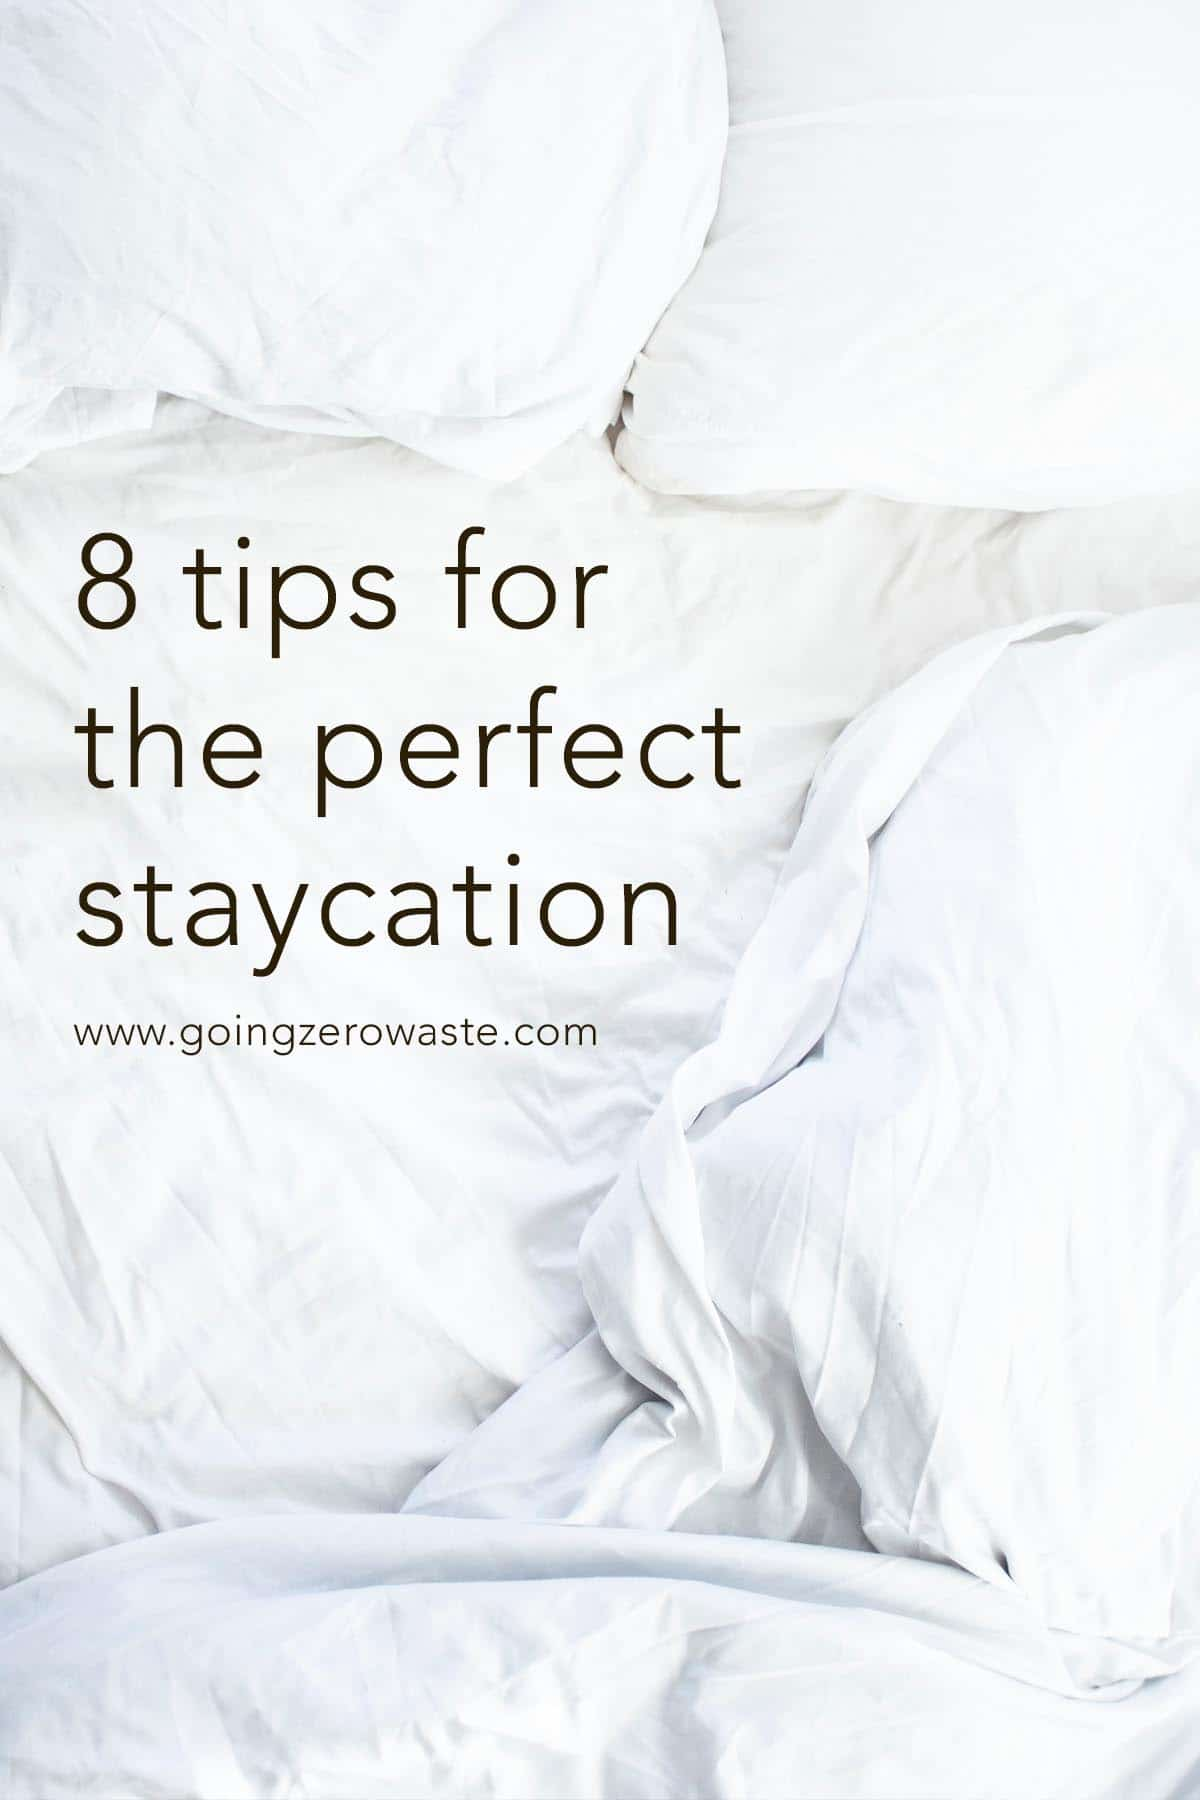 8 Tips for the Perfect Staycation